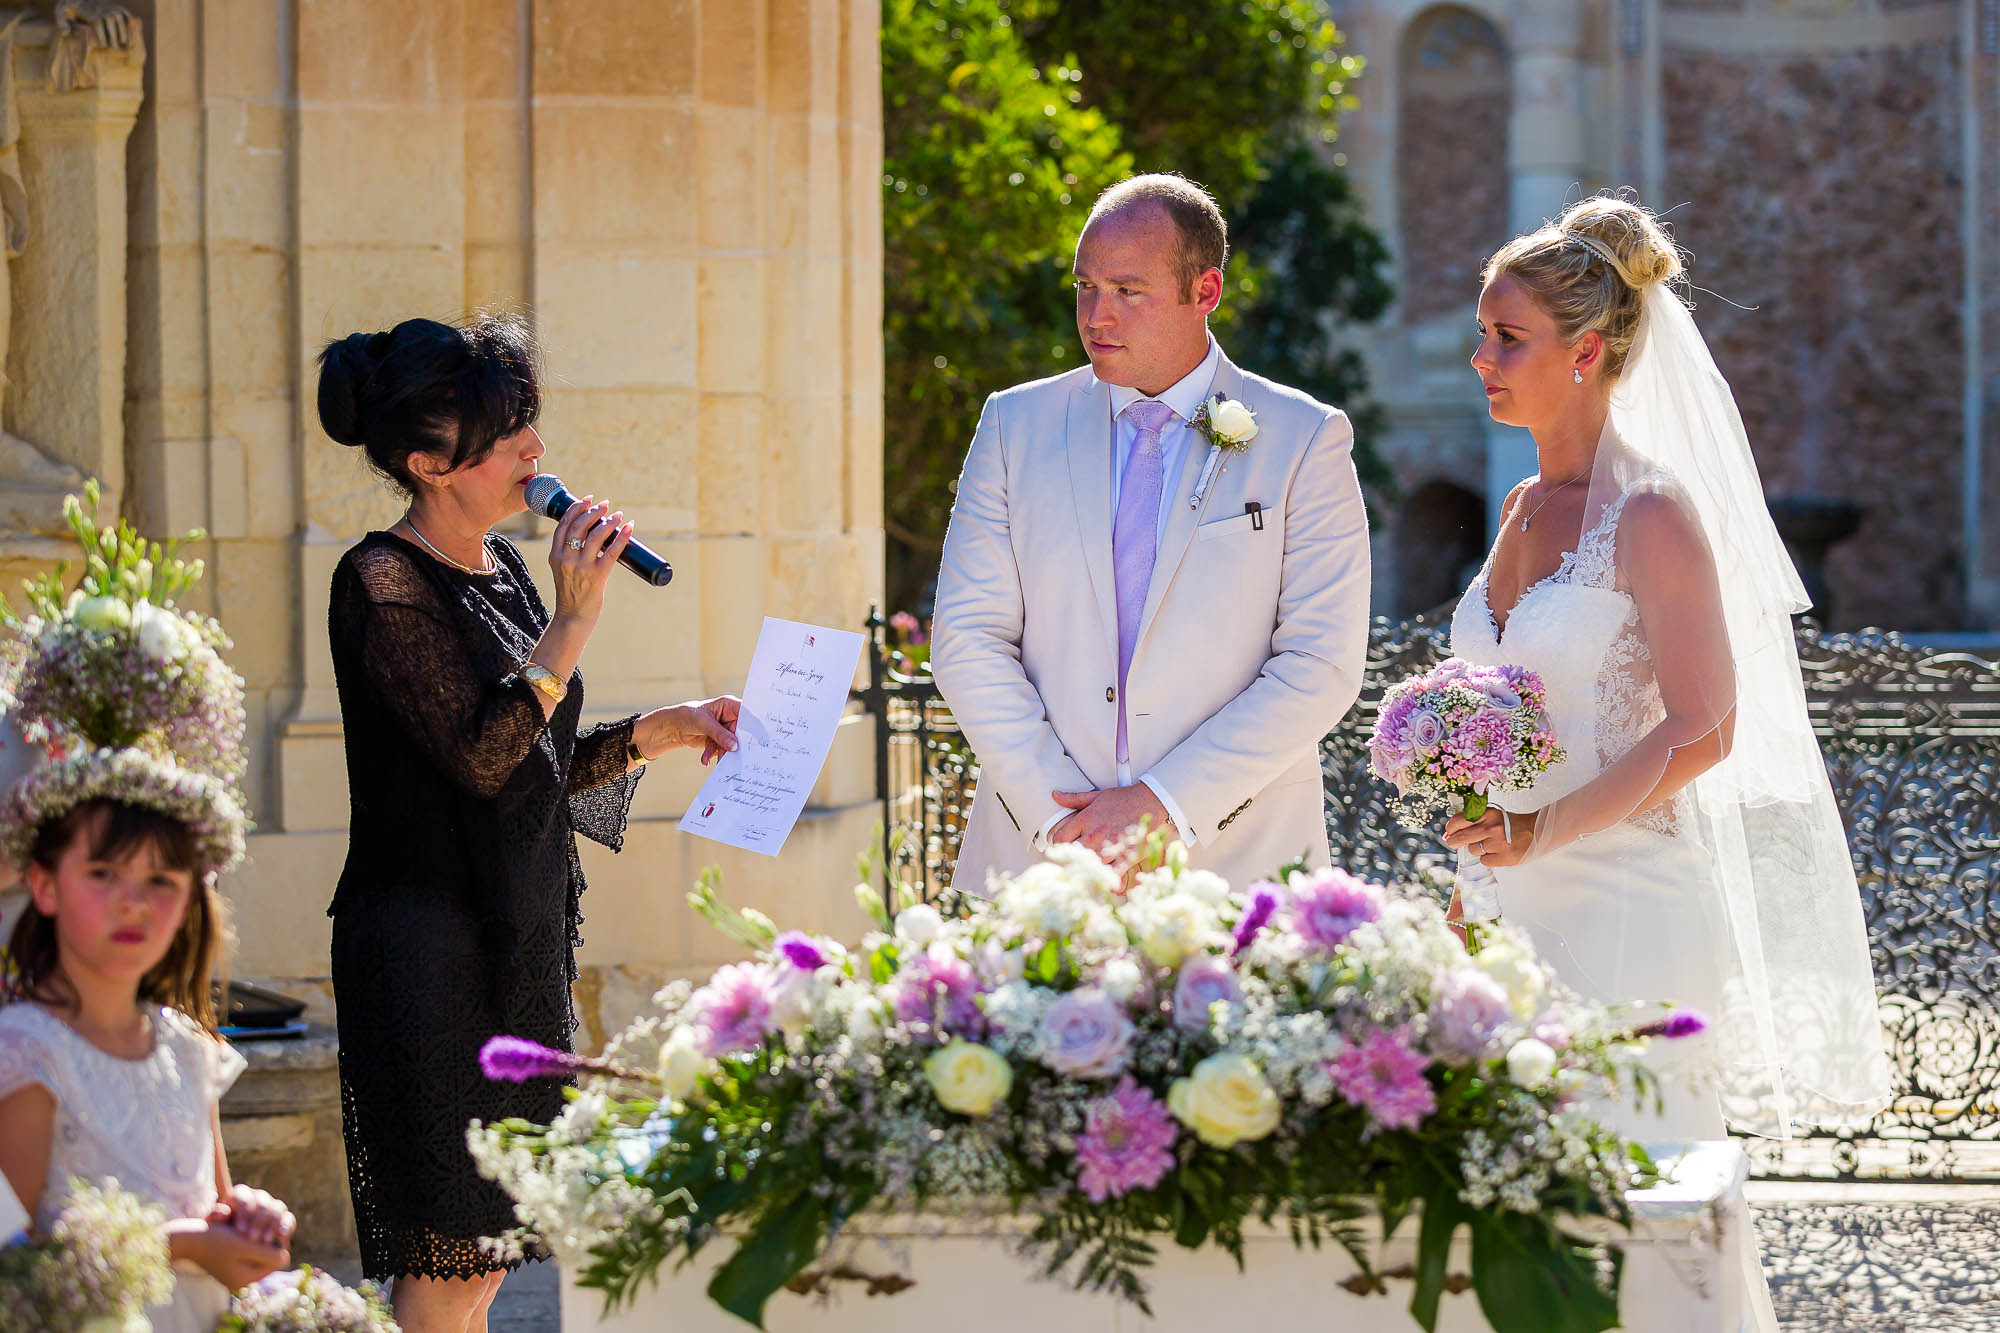 Bride and groom receive a temp wedding certificate for the wedding registrar. Photo by Elliot Nichol photography.